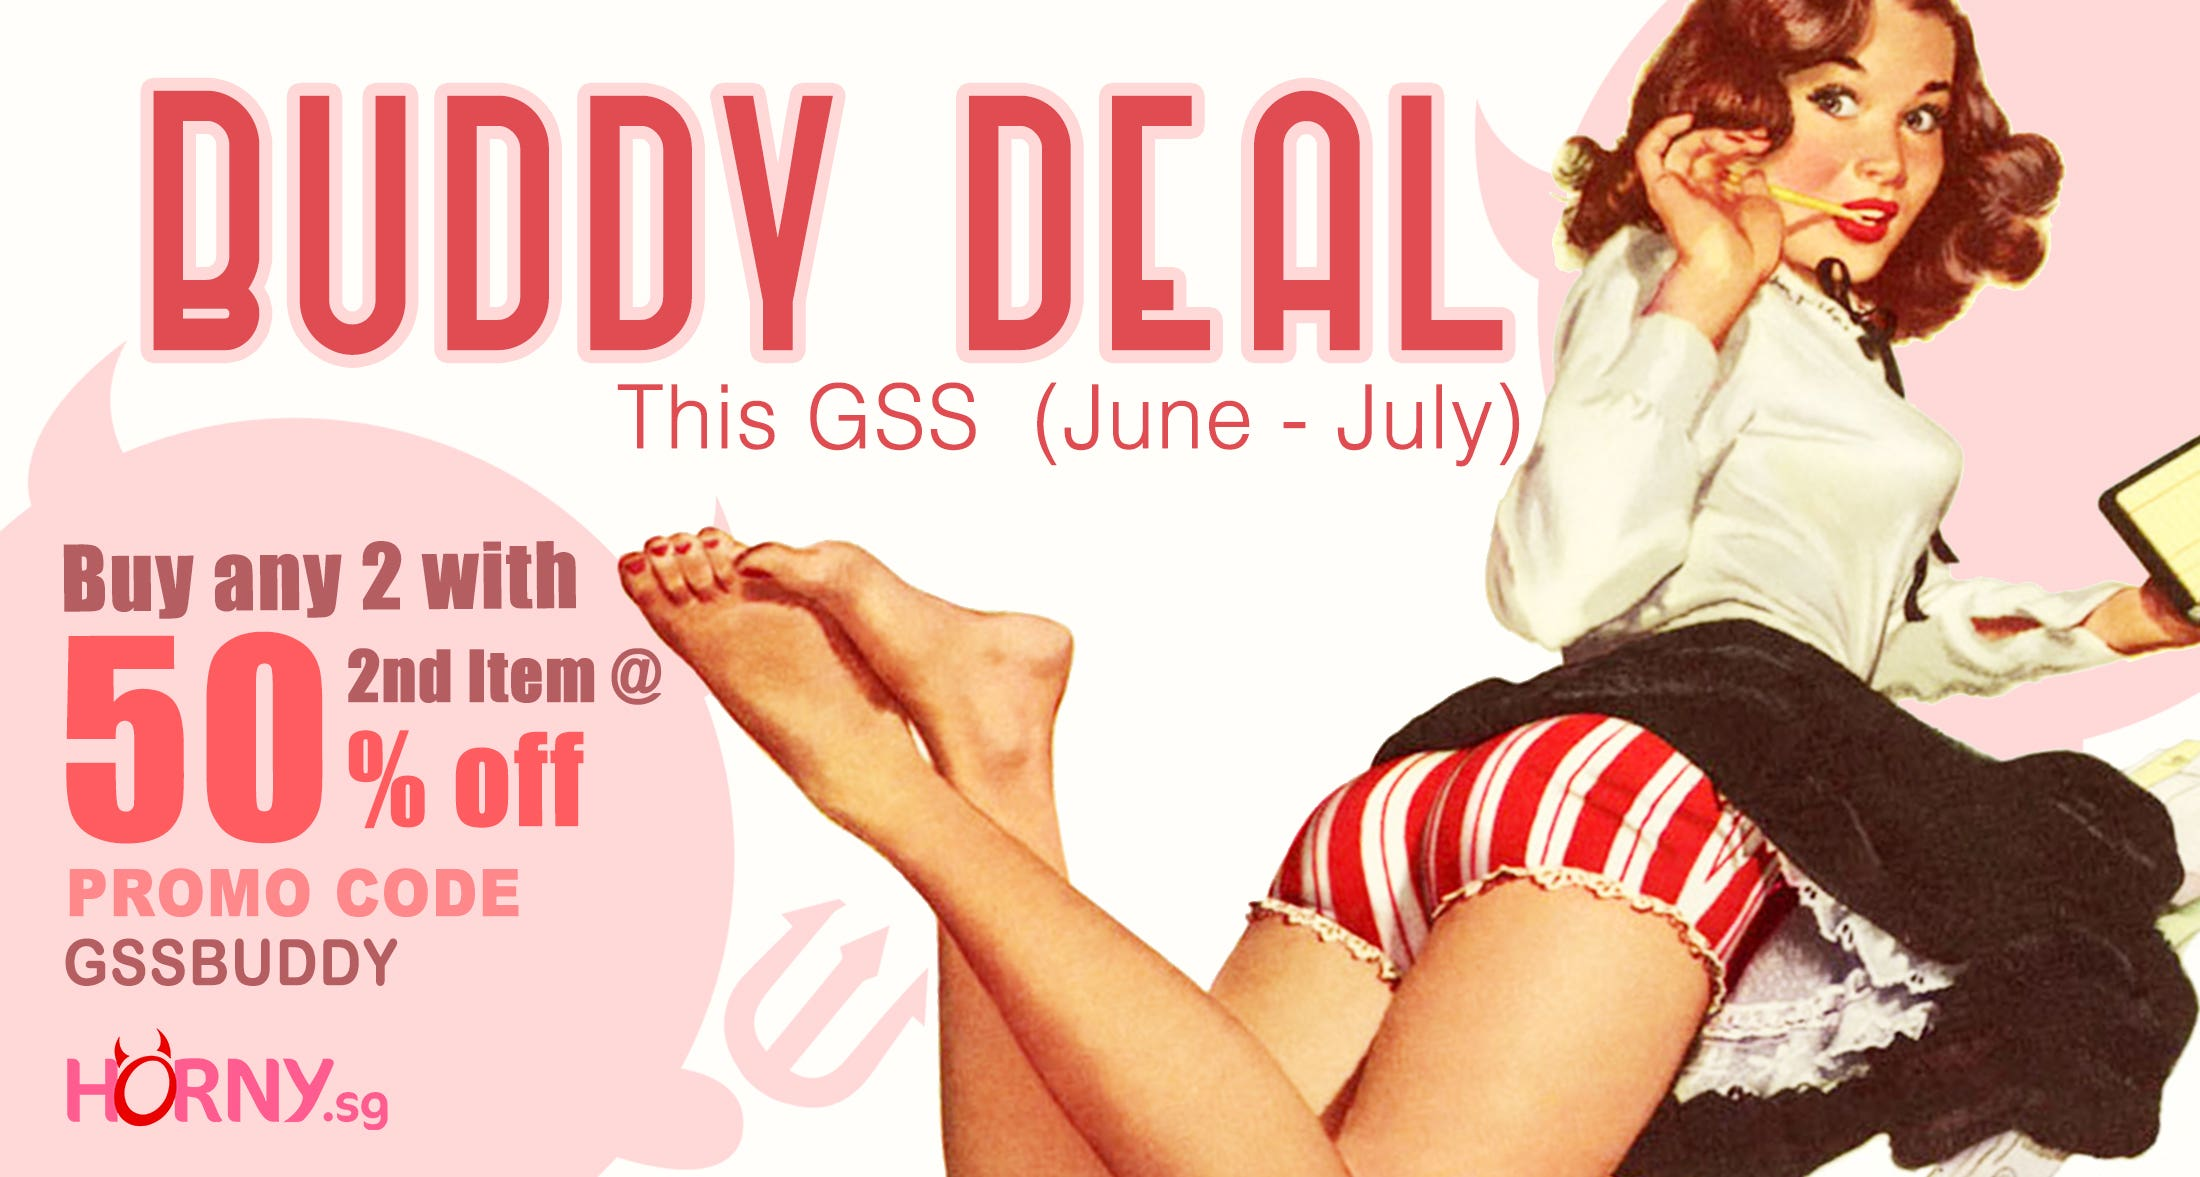 Buddy Deal GSS